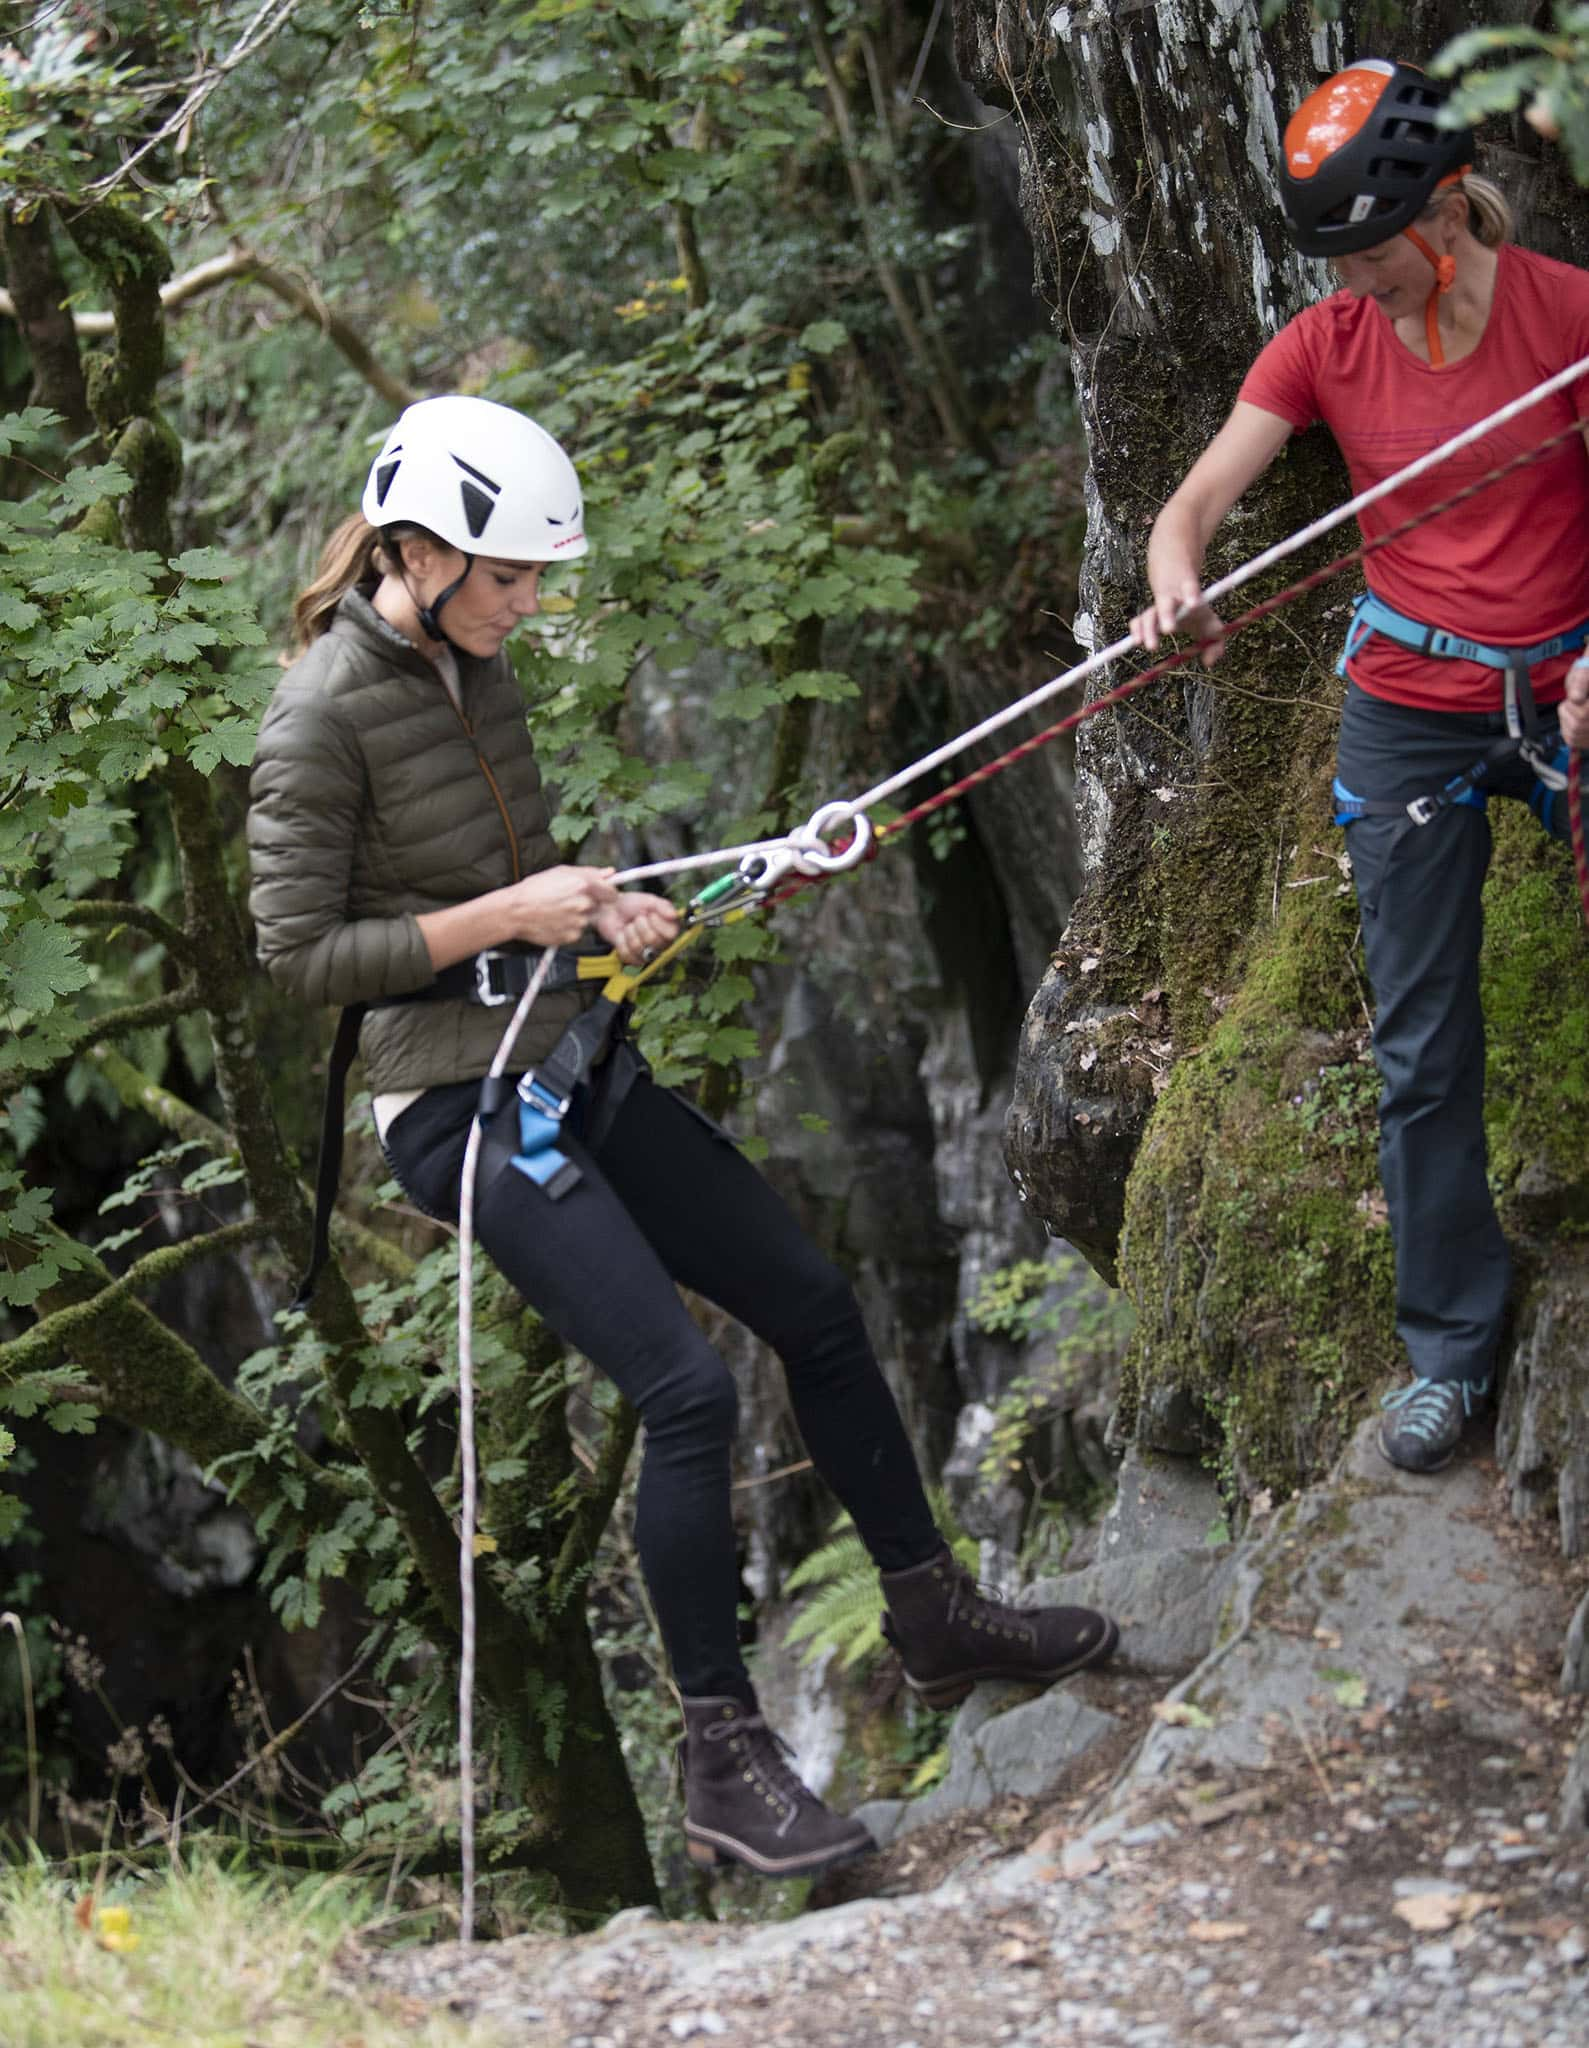 Kate Middleton tries out abseiling during her visit at the reopening of the Royal Air Force Windermere Adventure Training Centre